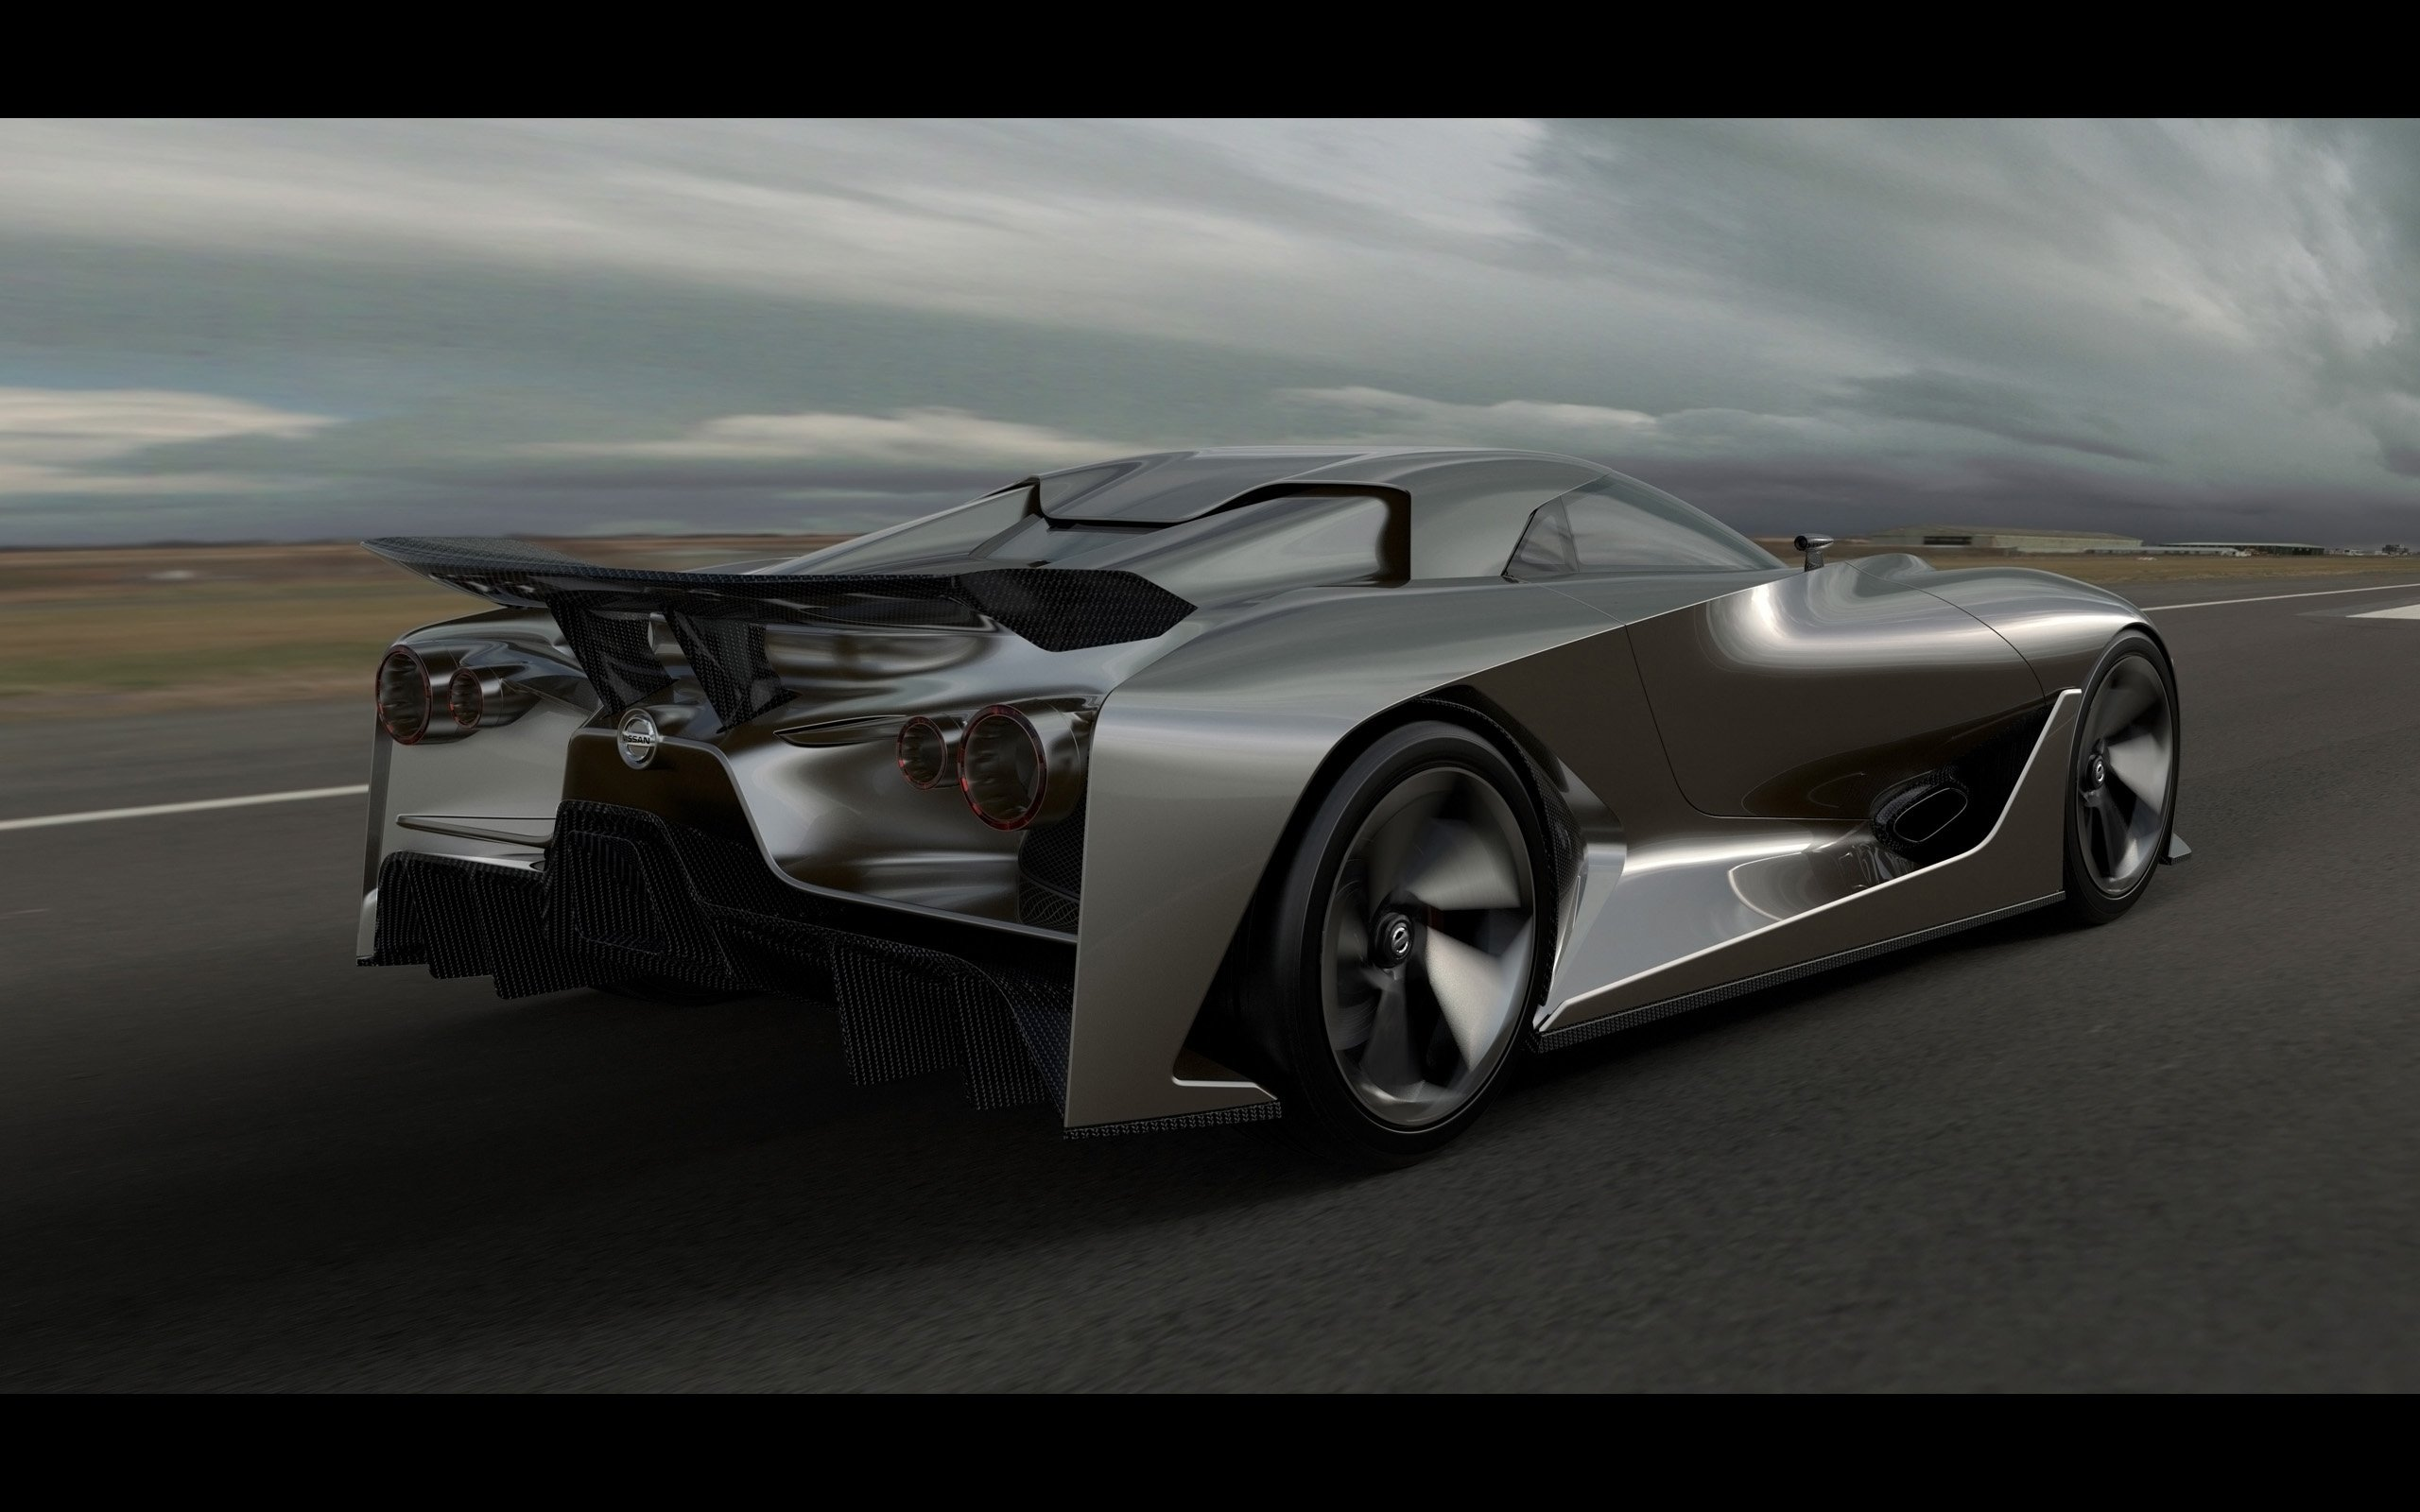 2014 Nissan Concept 2020 Vision Gran Turismo supercar ds ...